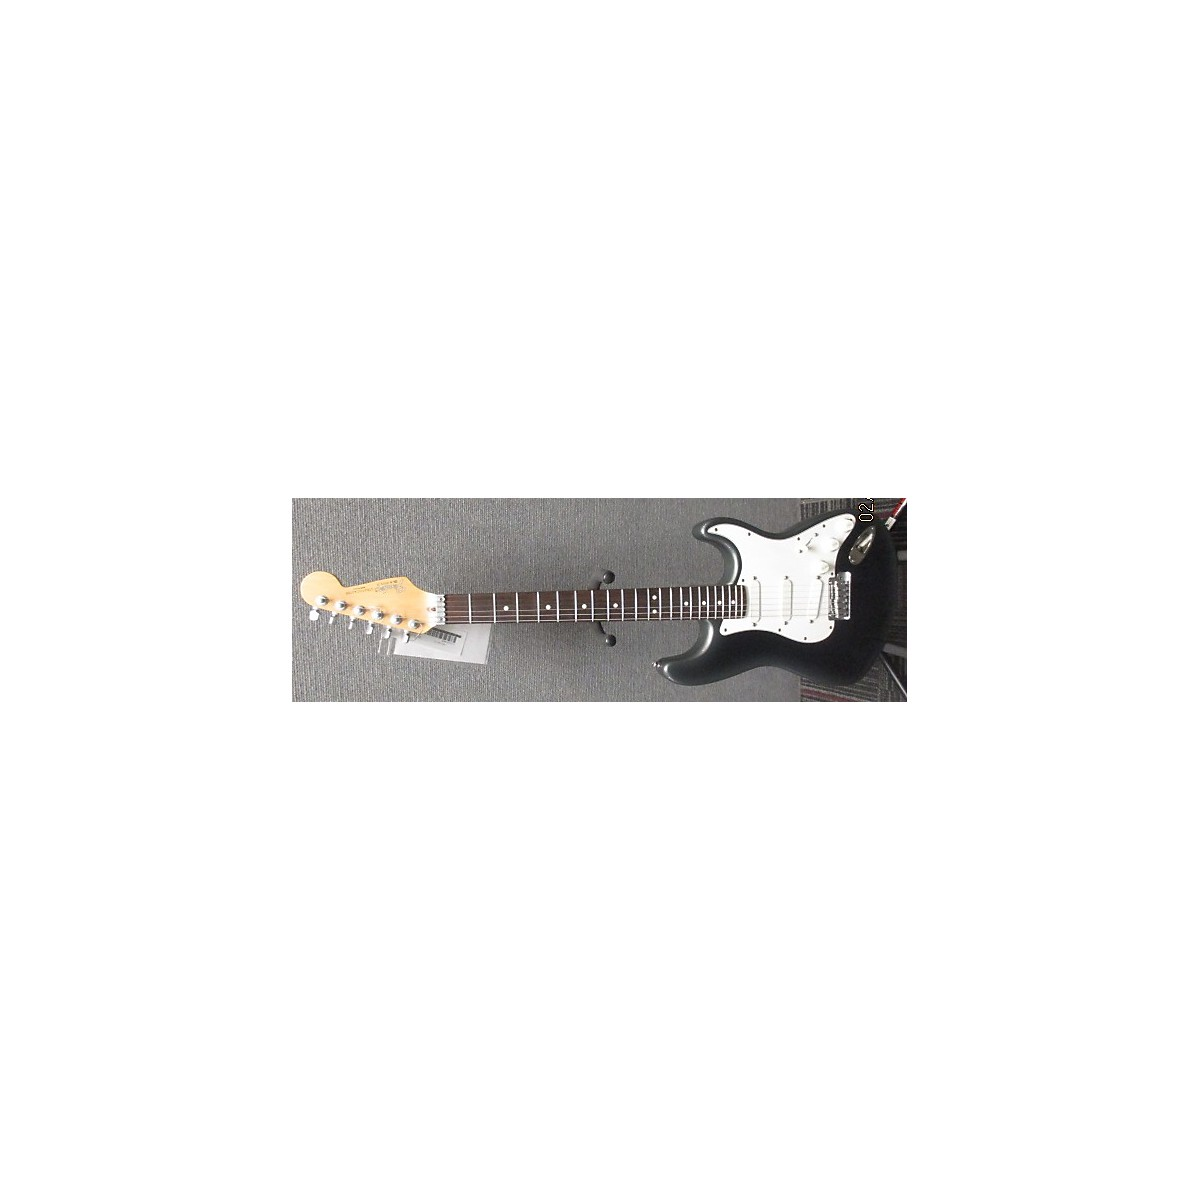 Fender 1990 American Deluxe Stratocaster Plus Solid Body Electric Guitar